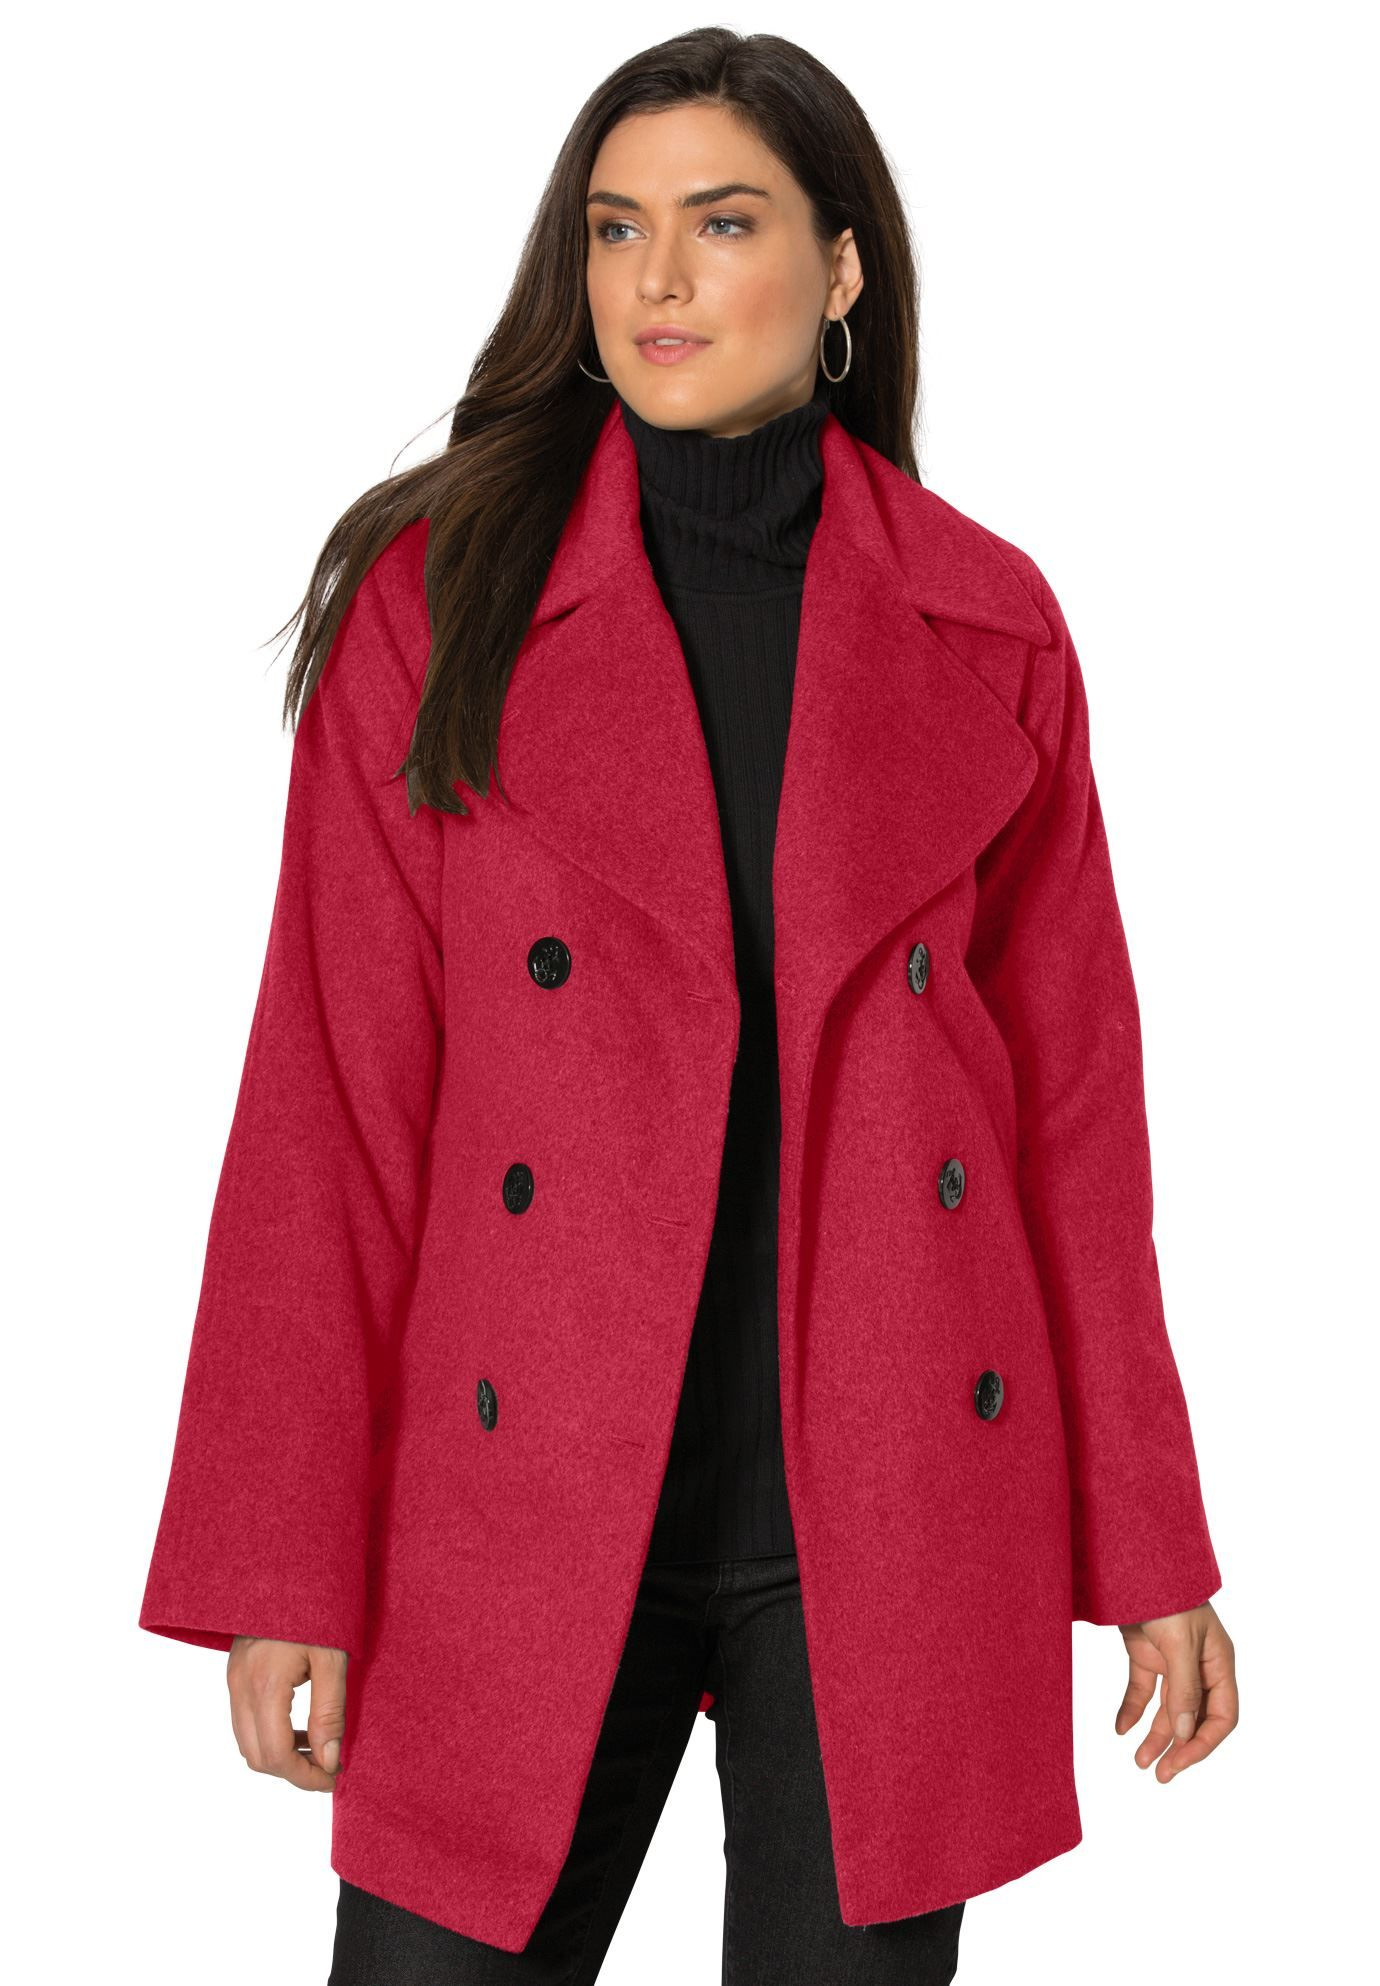 our classic plus size peacoat is the perfect top layer for modern